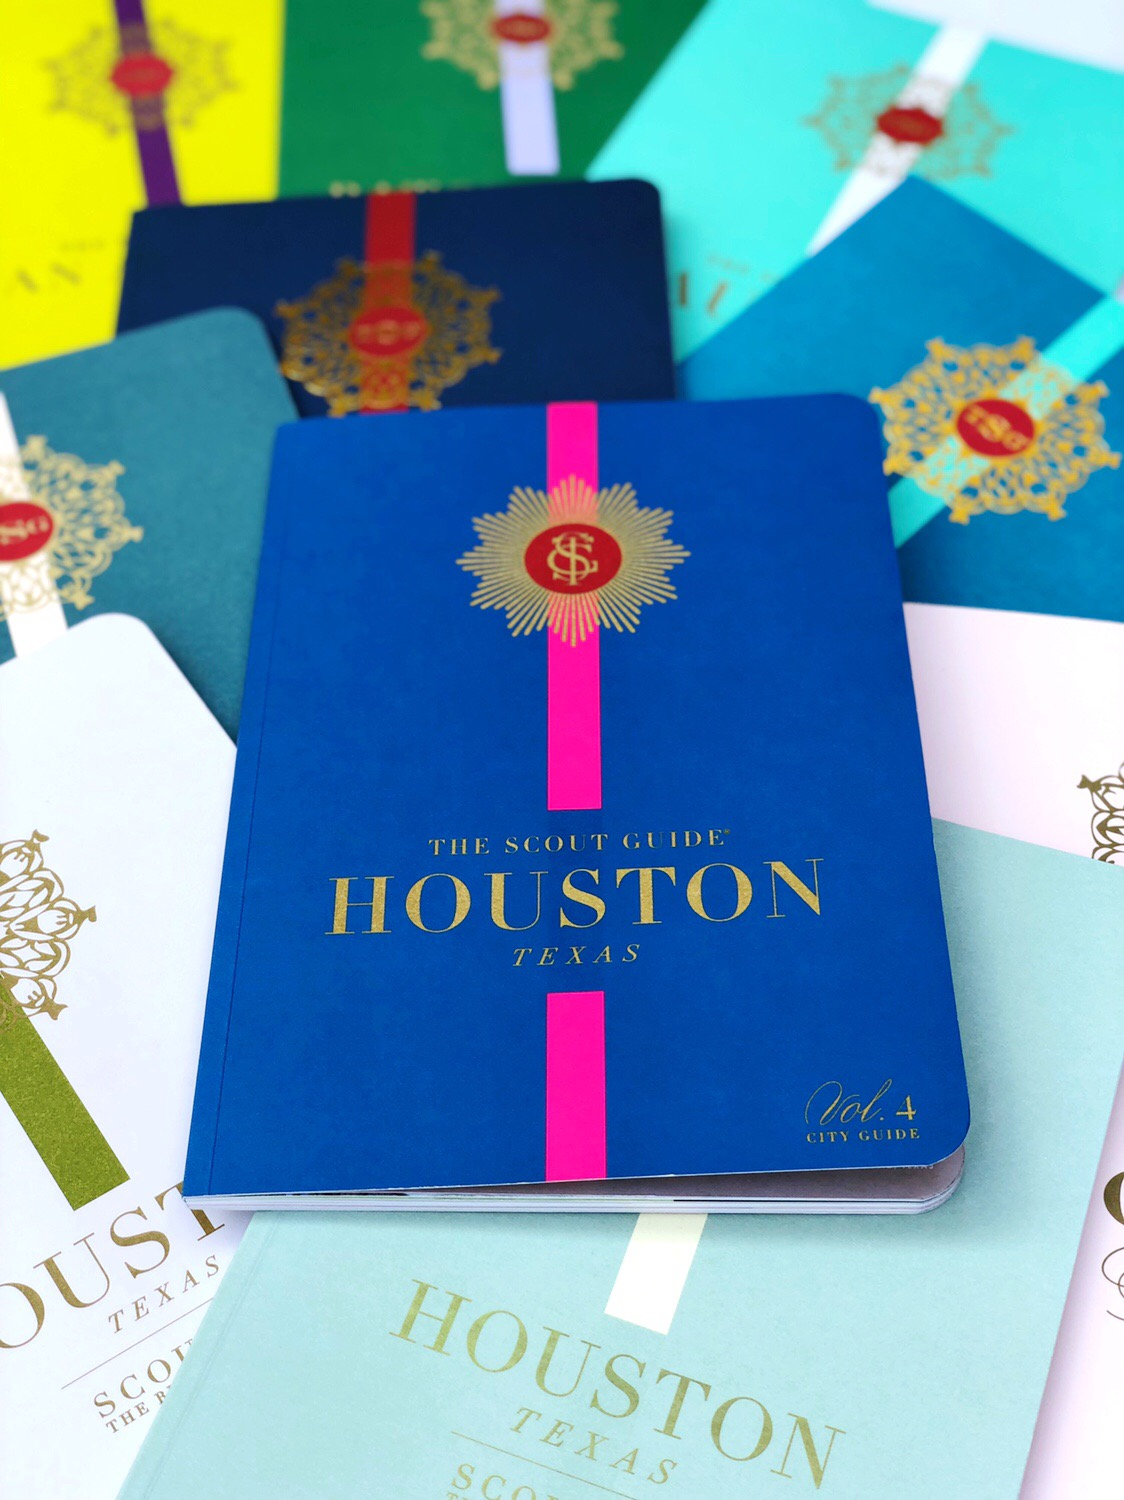 The Scout Guide Houston Vol. 4